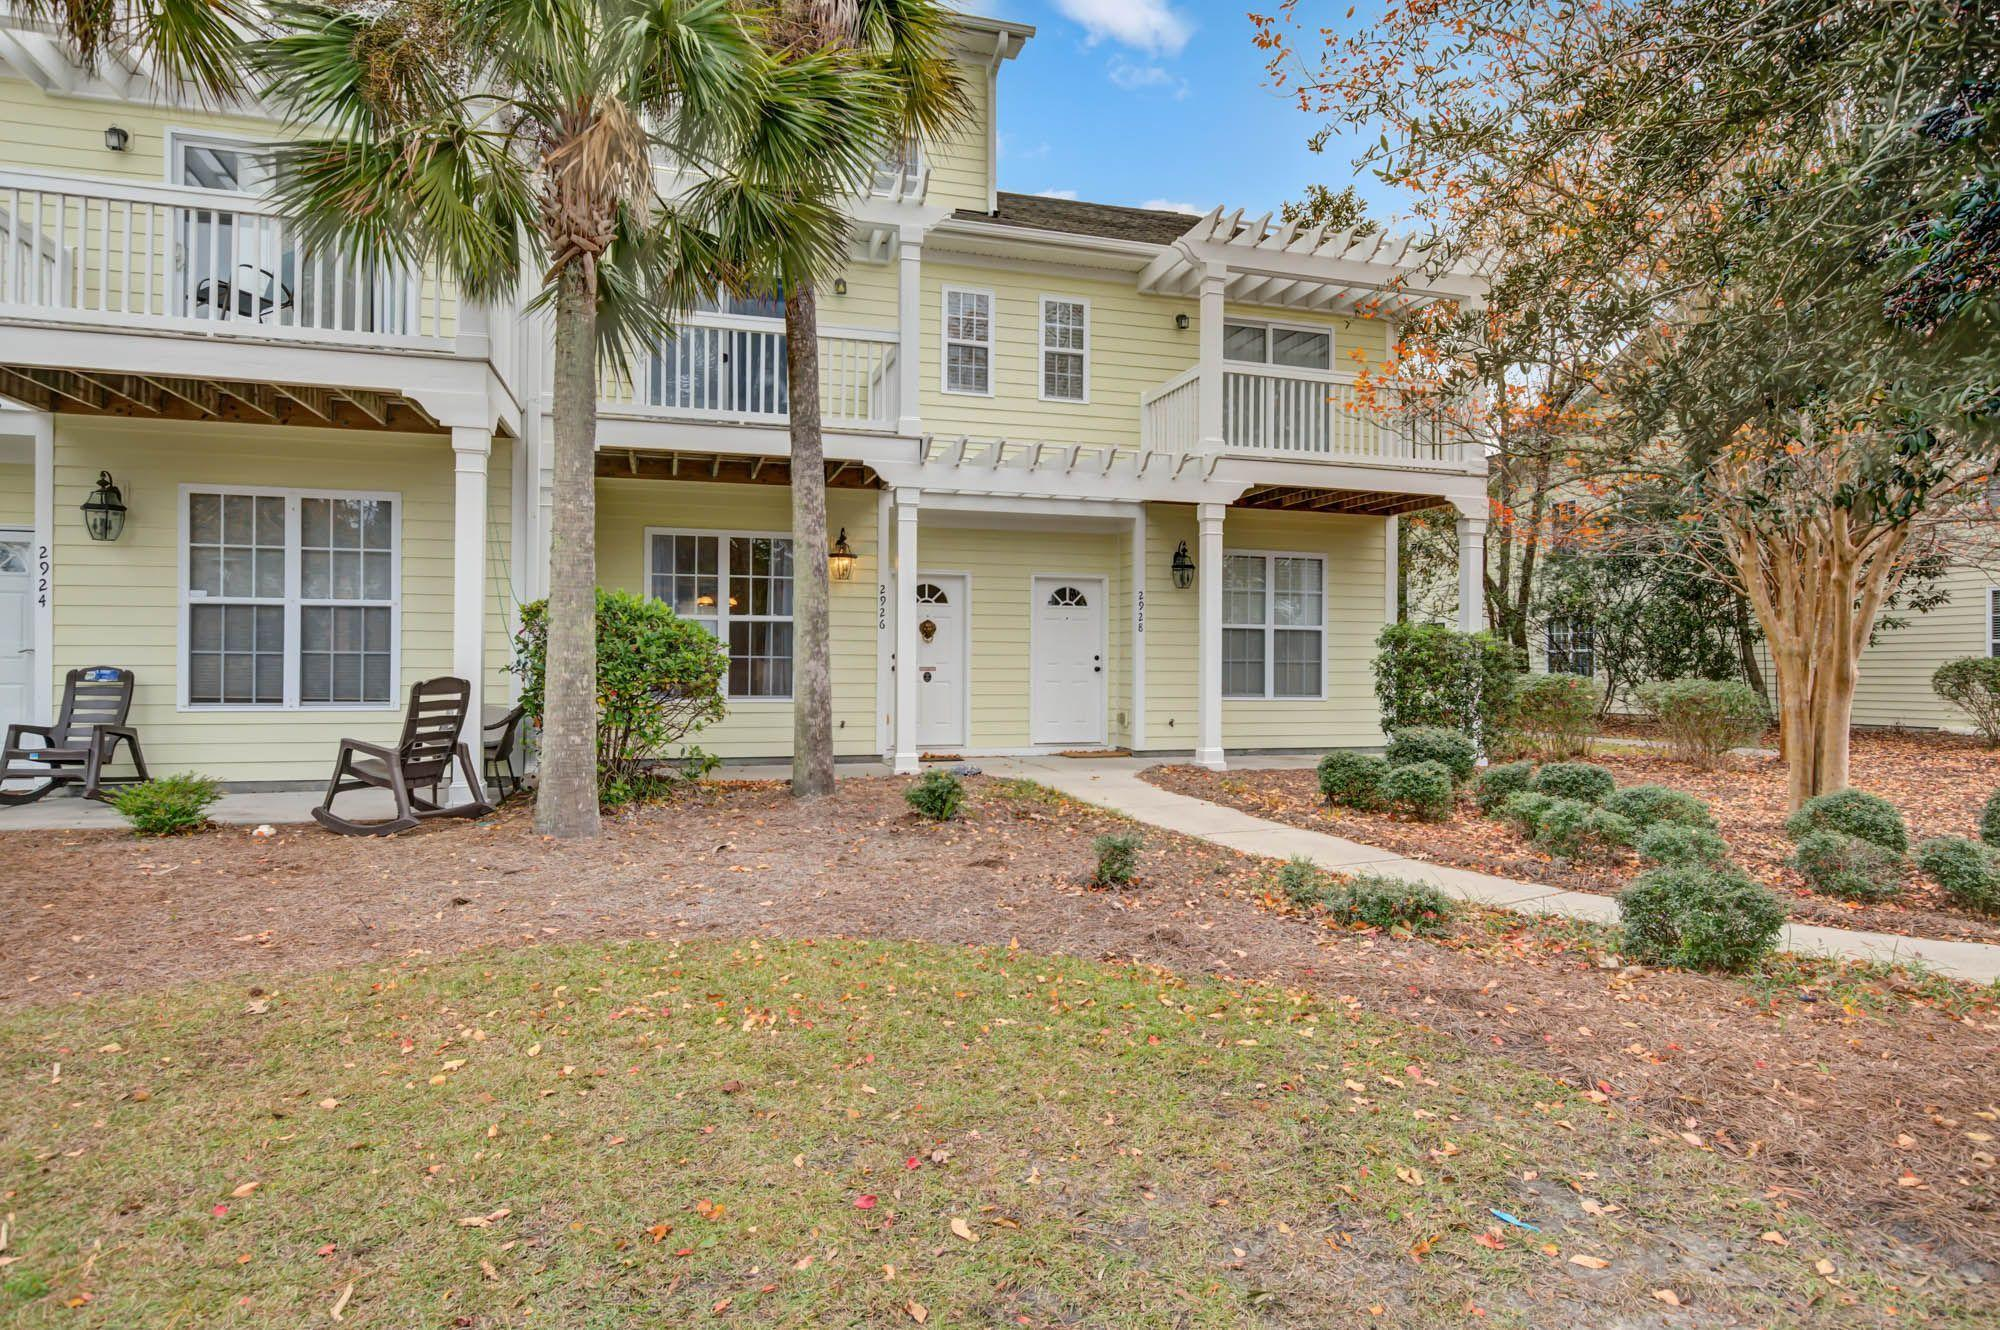 Whitney Lake Condos For Sale - 2926 Sugarberry, Johns Island, SC - 30